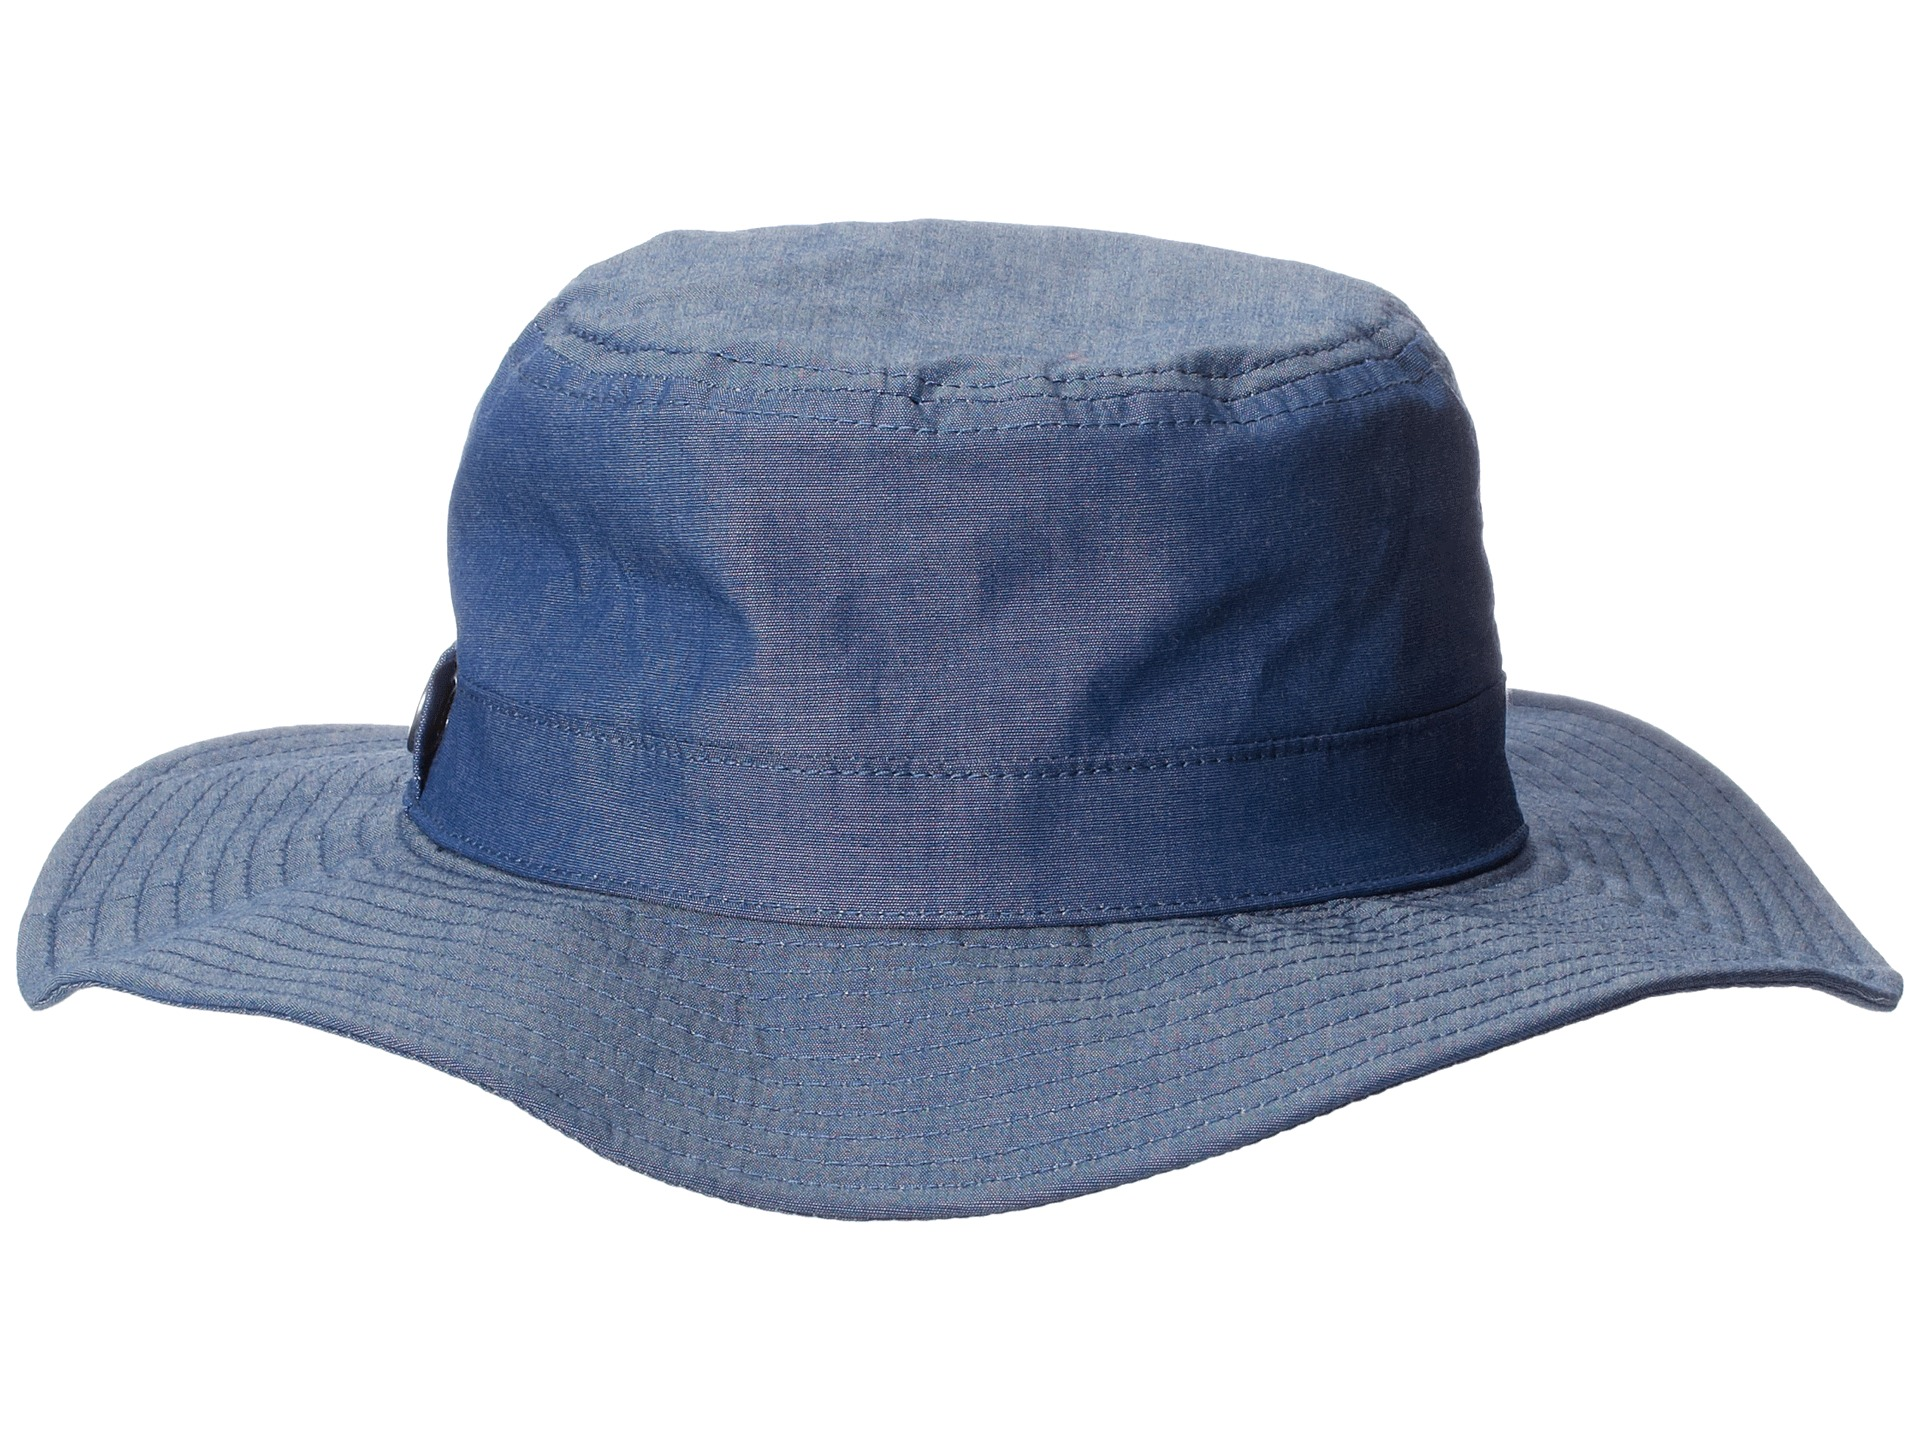 As if your mini beach bum wasn't cute enough already, plop the Patagonia Baby Sun Bucket Hat on your little one's head and get the camera ready/5(7).